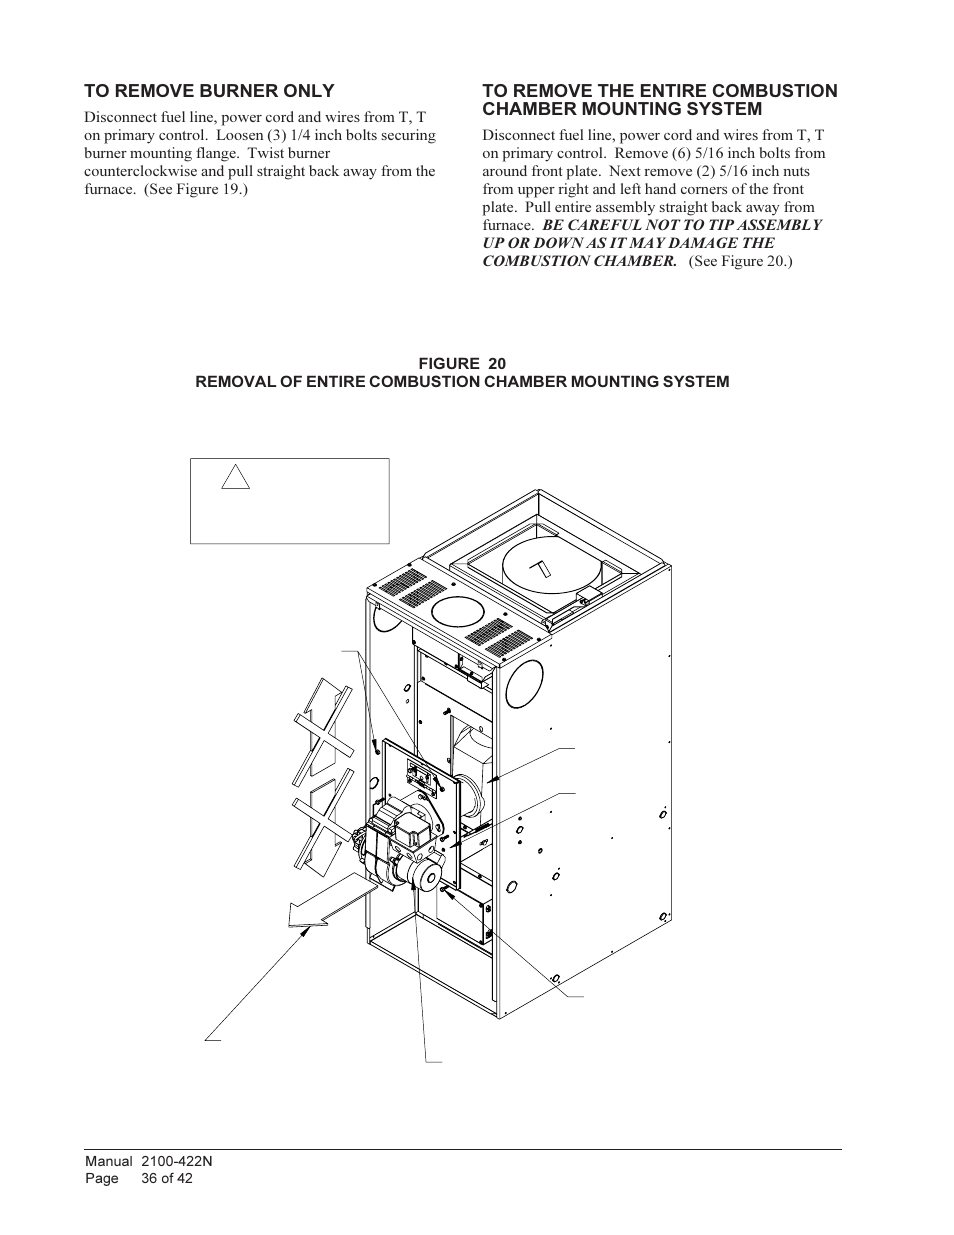 Danger Bard Oil Furnace Flf085d36f User Manual Page 36 42 Burner Wiring